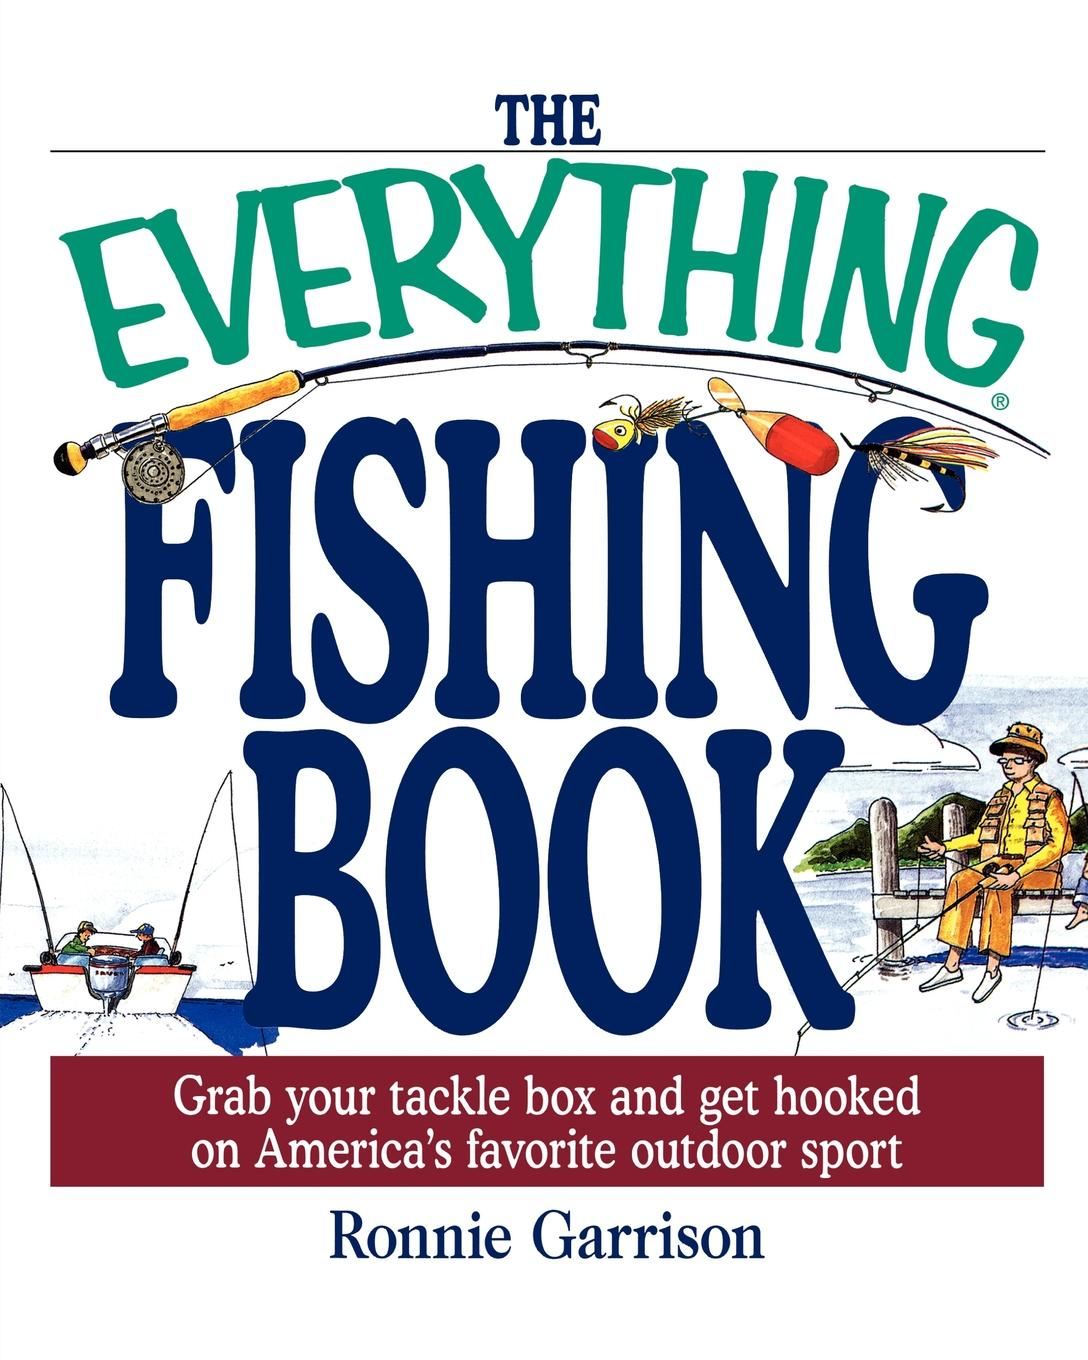 Ronnie Garrison The Everything Fishing Book. Grab Your Tackle Box and Get Hooked on America.s Favorite Ougrab Your Tackle Box and Get Hooked on America.s Favorite 11bb 4 1 1 715g he10000 surf casting reel metal spinning fishing reel long shot wheel saltwater reels pesca fishing tackles